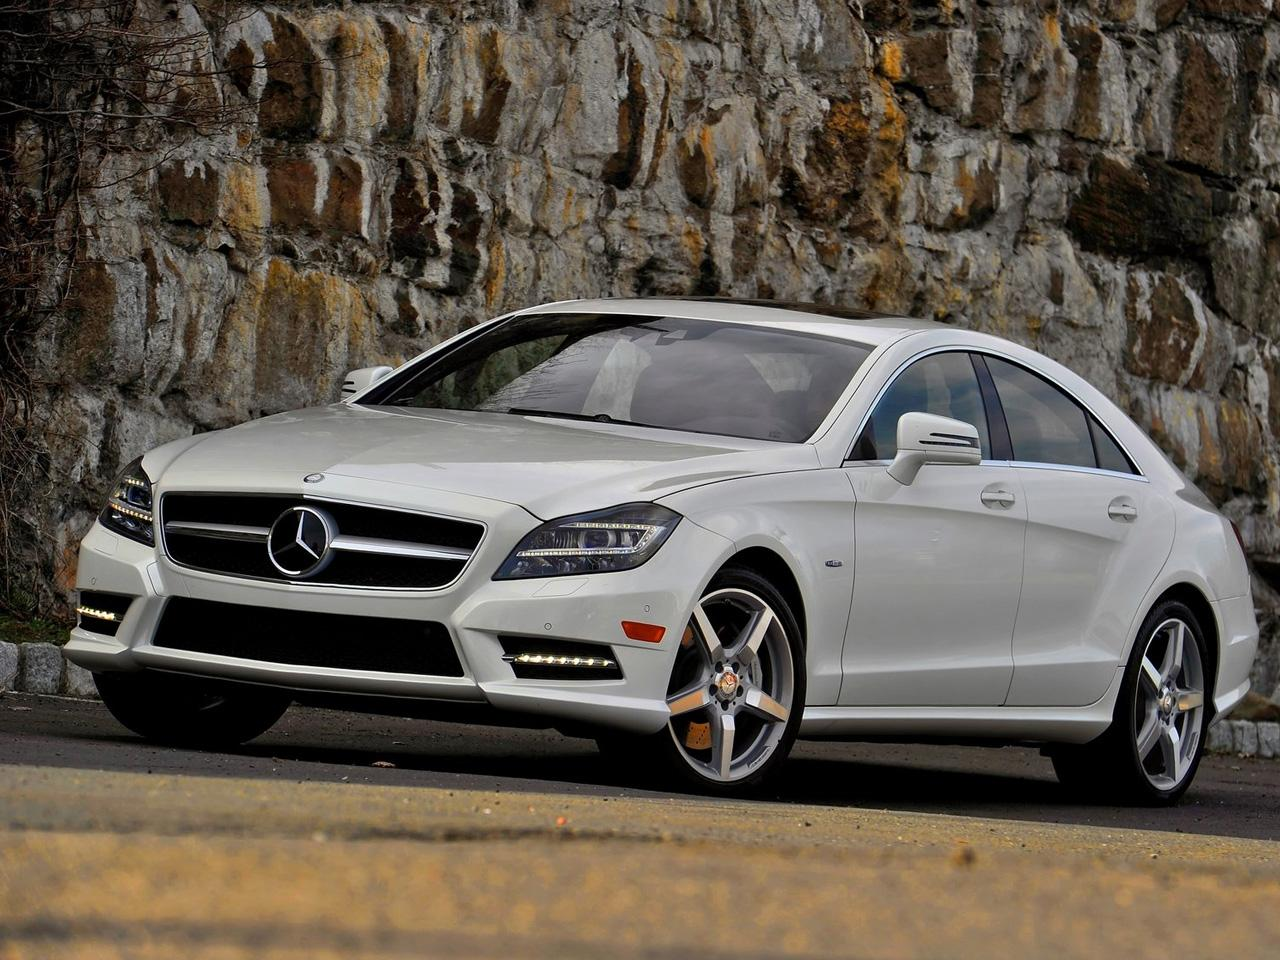 Mercedes benz cls550 2012 hottest cars today for 2012 mercedes benz cls550